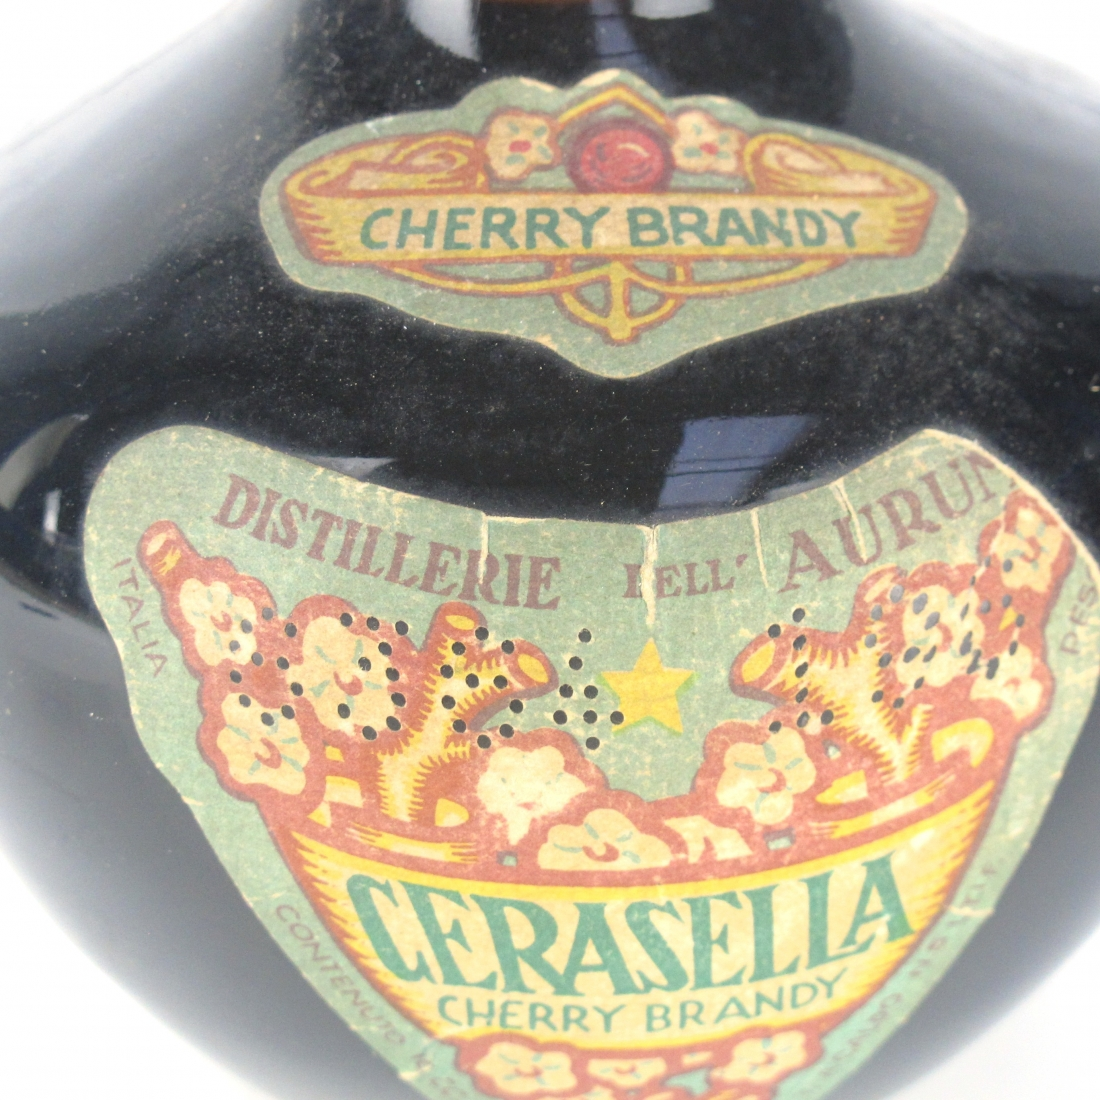 Cerasella Cherry Brandy 1960s